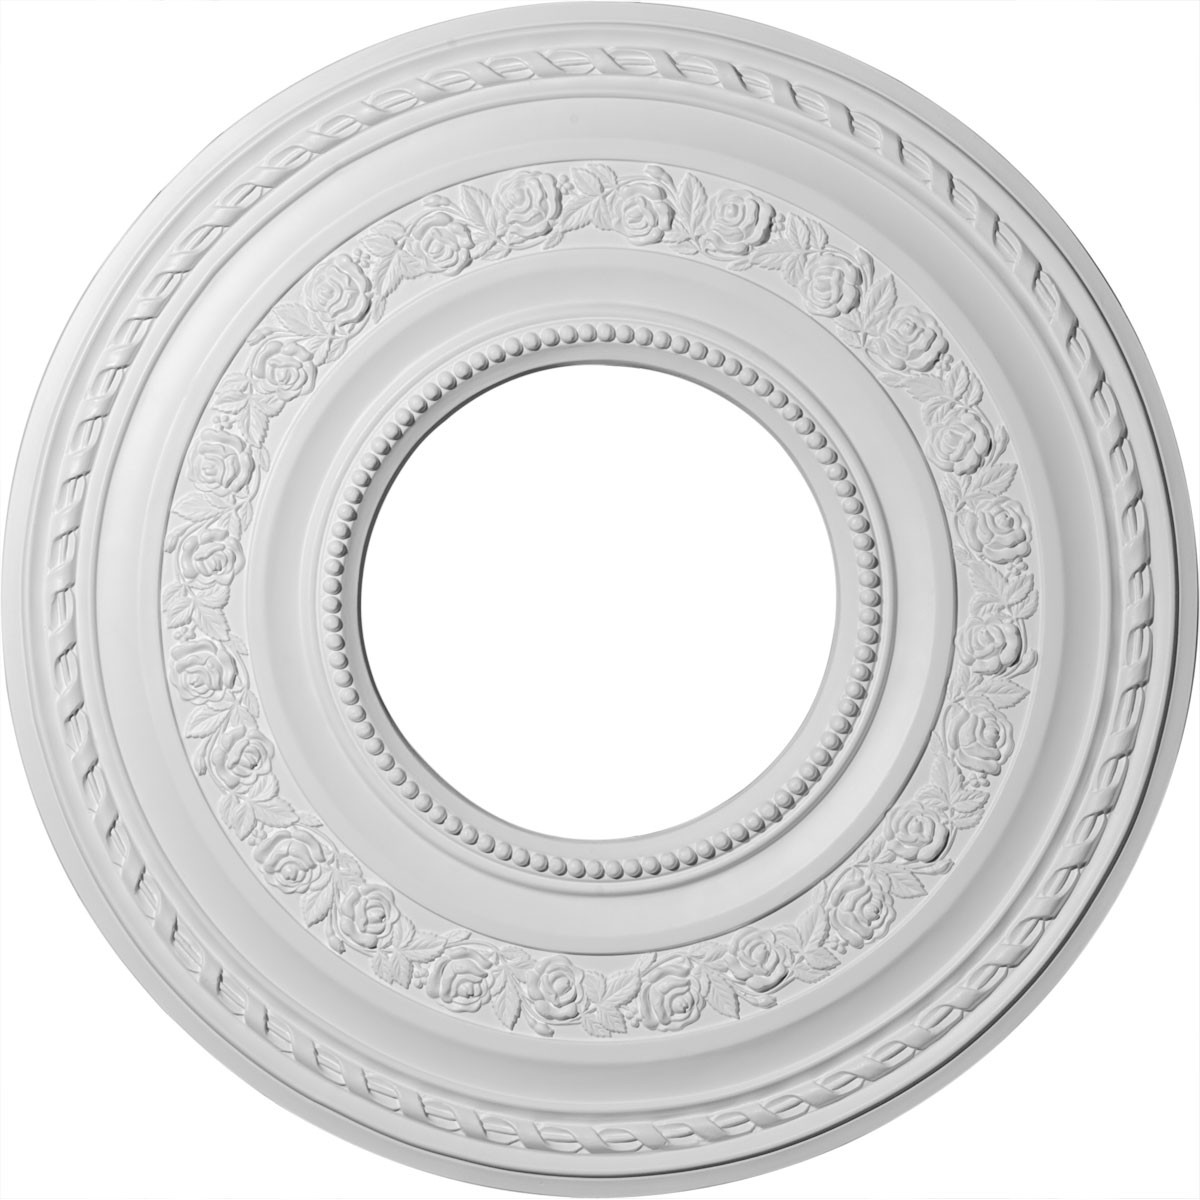 """EM-CM29AT - 29 3/8""""OD x 11 5/8""""ID x 1 1/8""""P Anthony Ceiling Medallion (Fits Canopies up to 11 5/8"""")"""